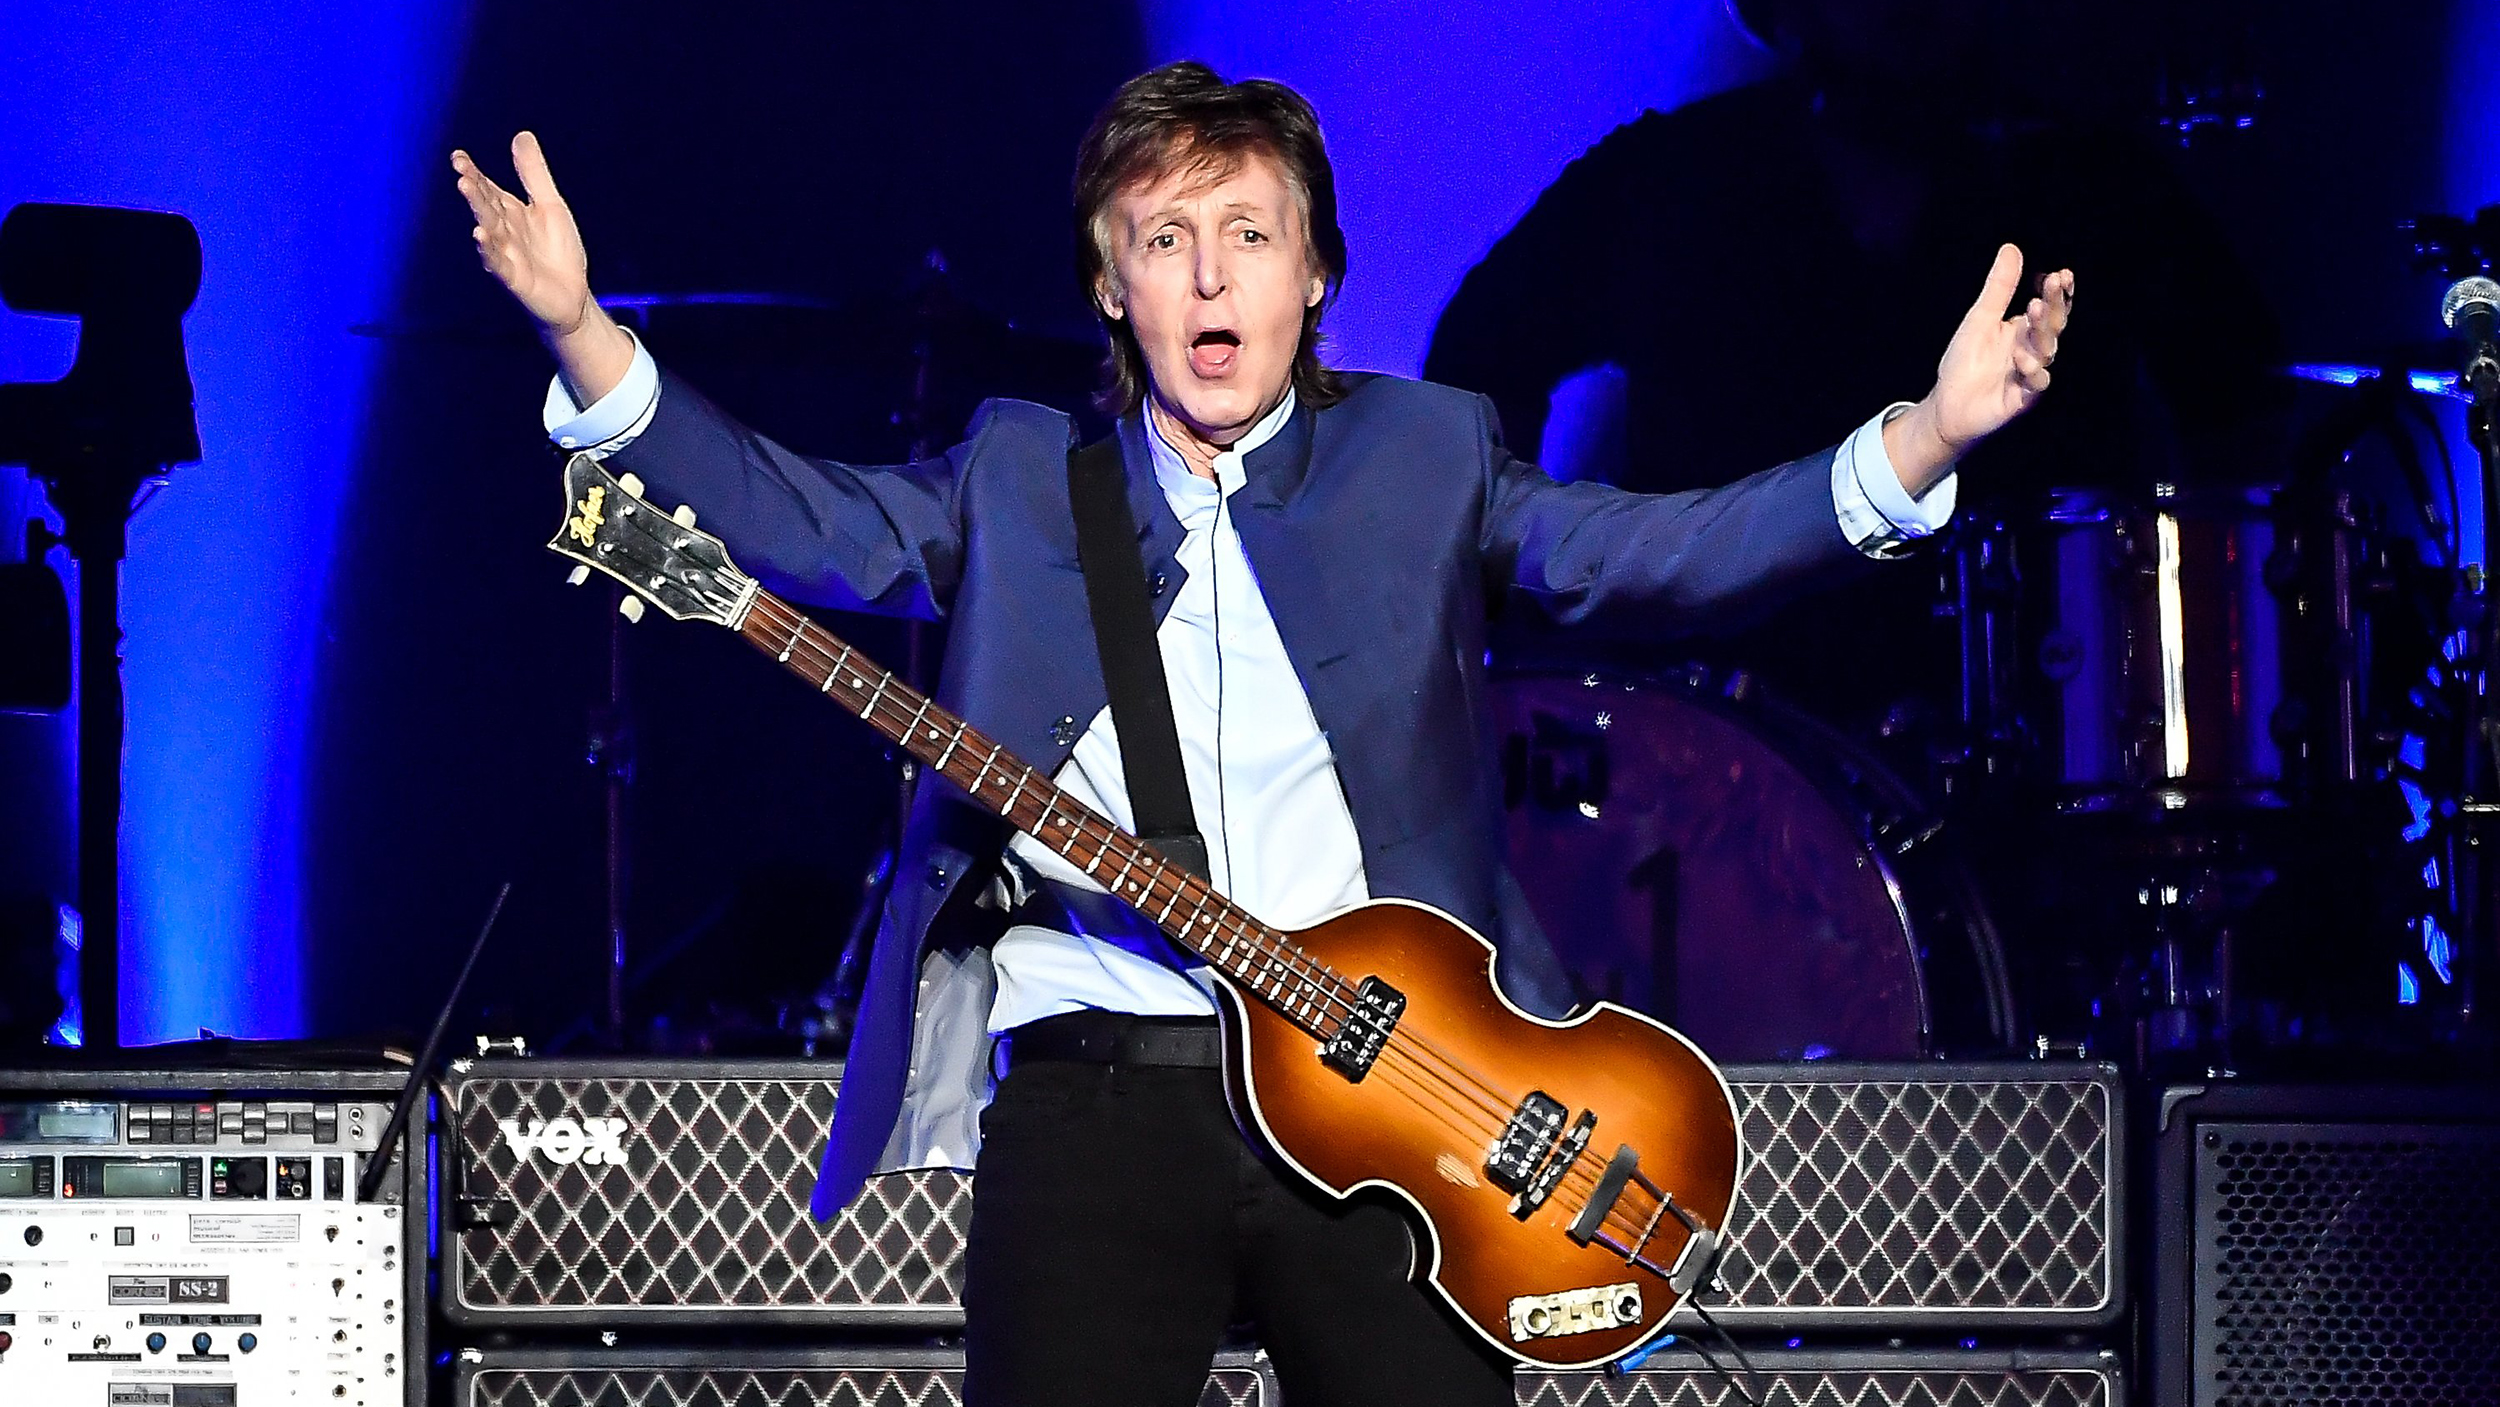 Paul McCartney Plays A Hard Days Night For The First Time In 51 Years